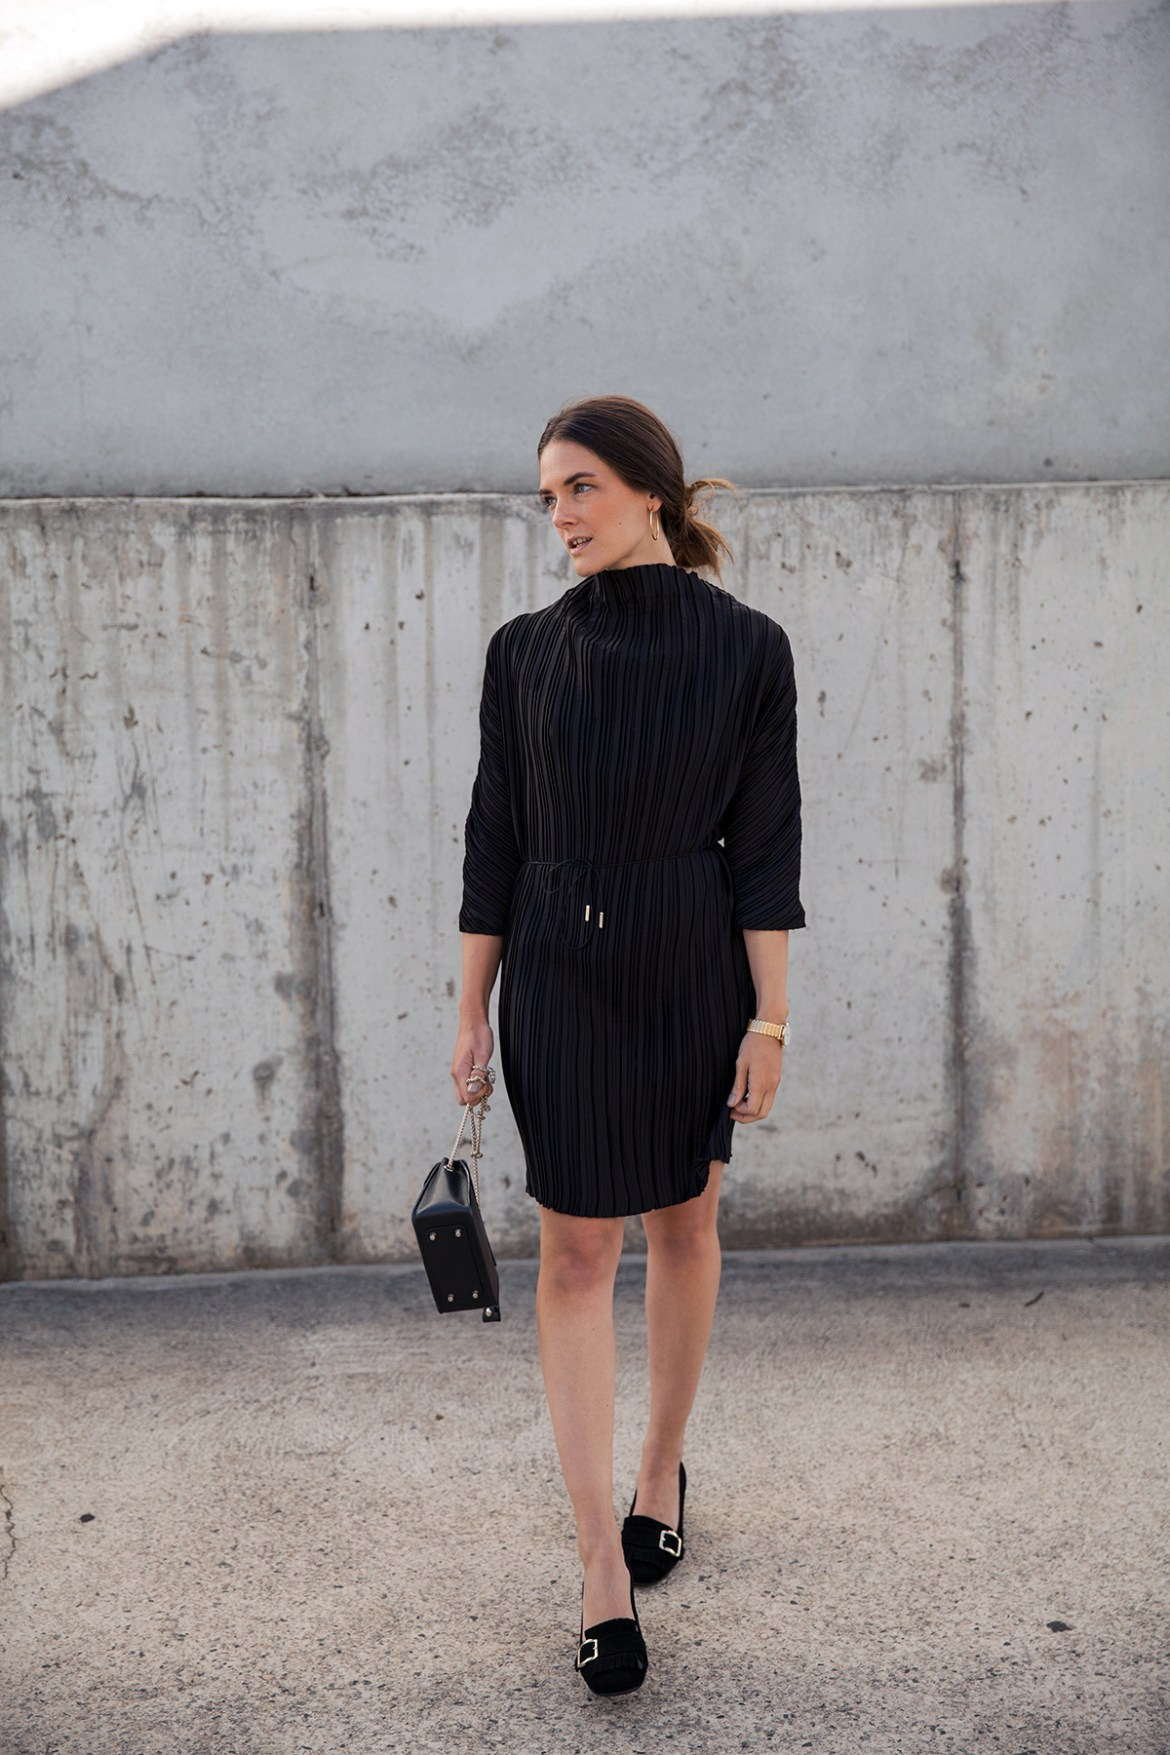 Third Form Rolling Winds black Dress worn by Australian fashion blogger Inspiring Wit